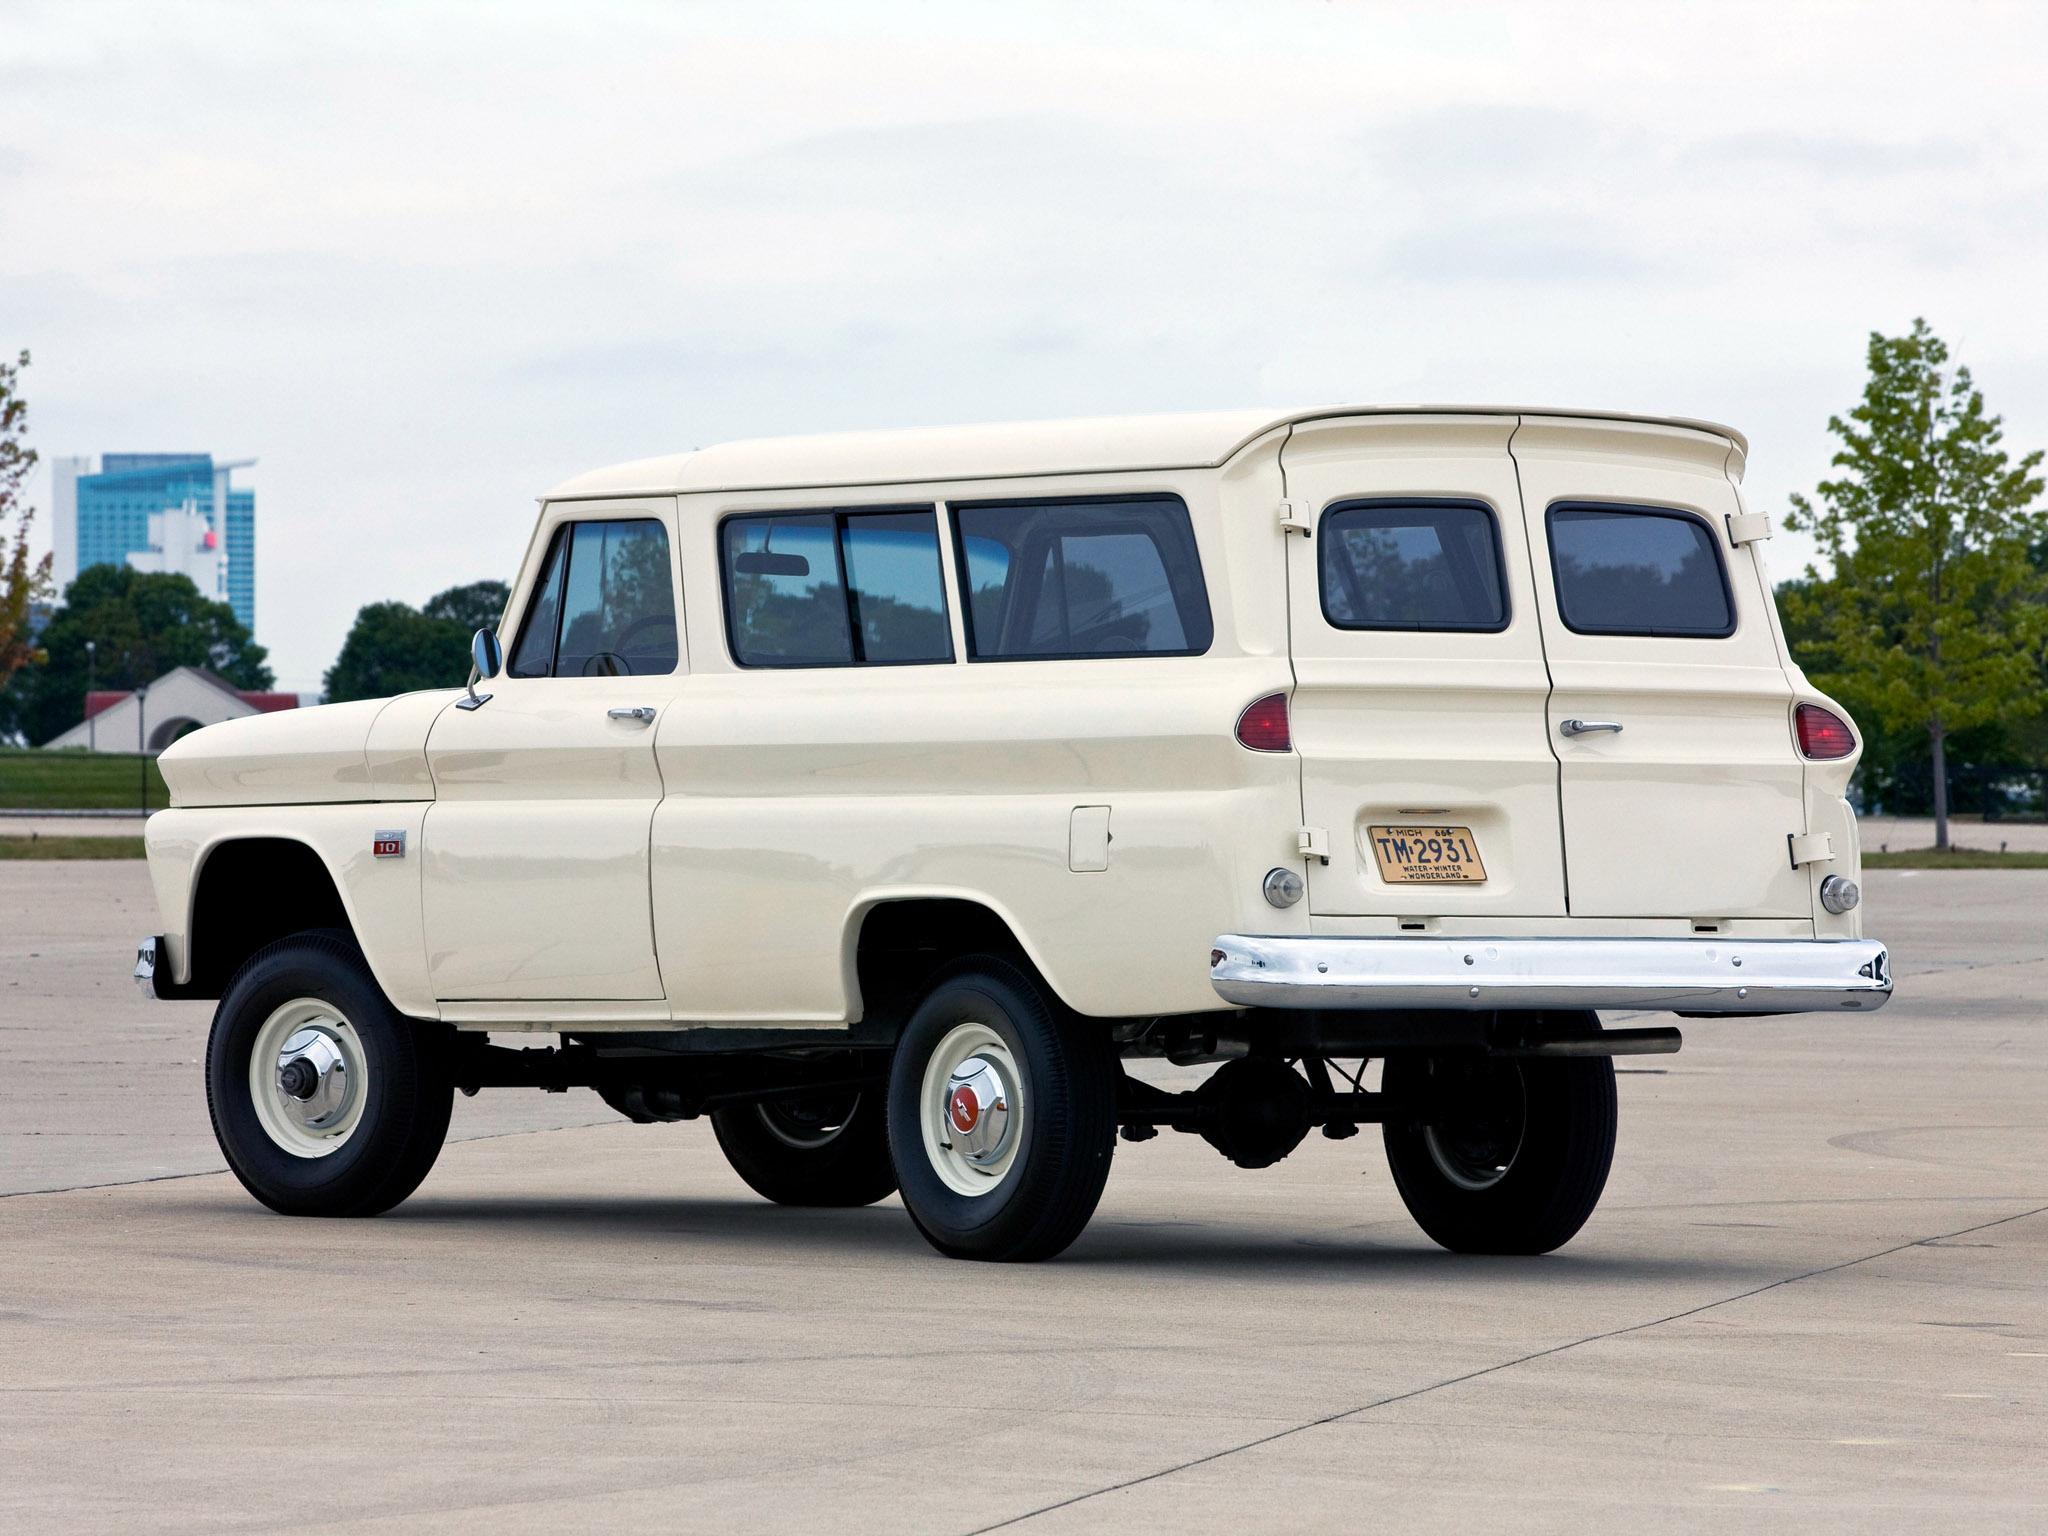 Impinterior together with Chevrolet C Engine Drivetrain furthermore X also F F E B Ca D E Aa in addition Tr B Chevy C Buildup Bfactory Panhard Bar. on 1965 chevy c10 parts